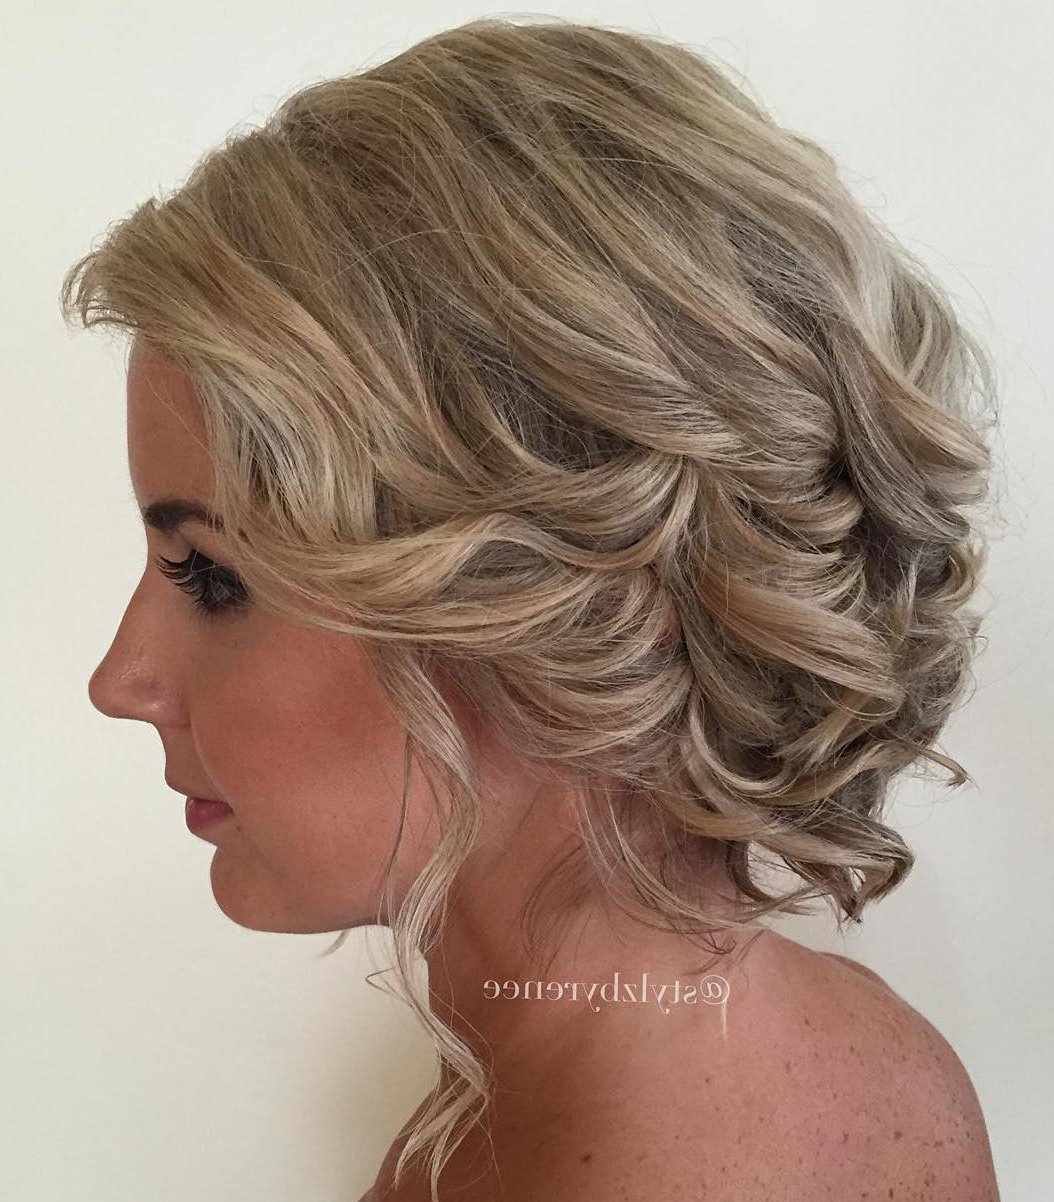 Well Known Curled Updo Hairstyles Intended For Trendy Updos For Short Hair: From Casual To Special Occasions (Gallery 19 of 20)